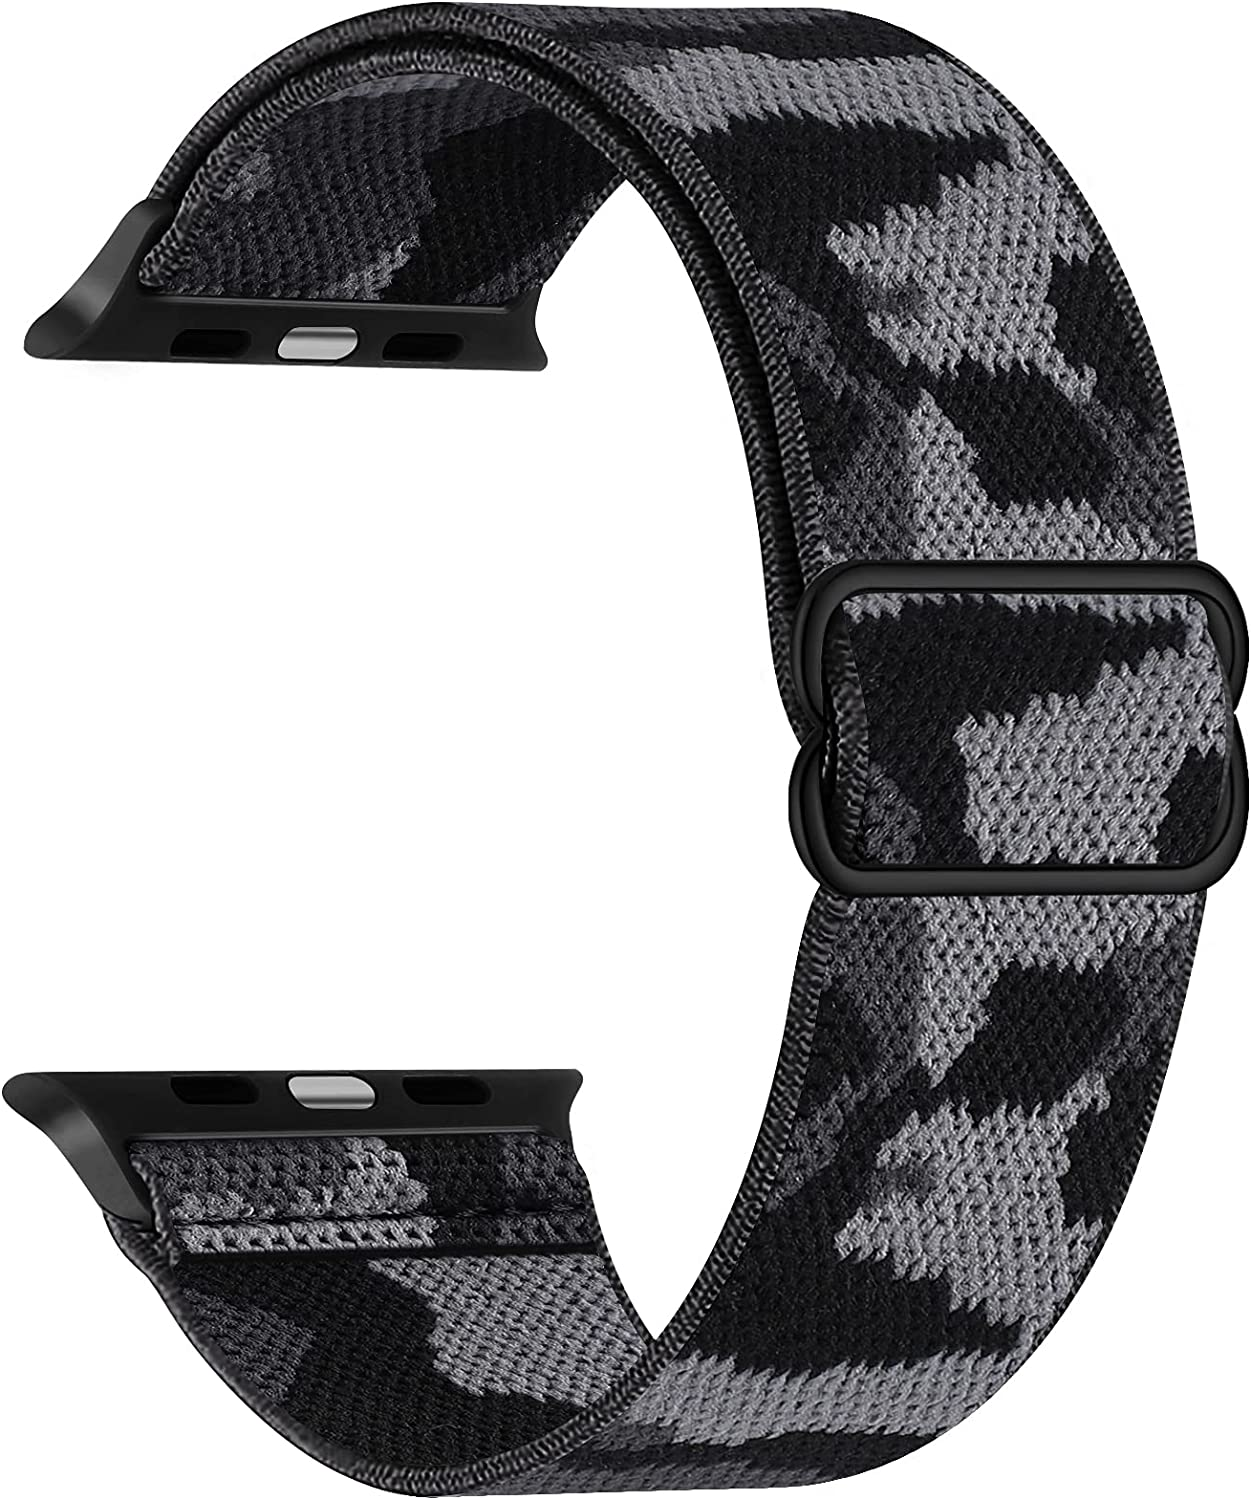 Adjustable Stretchy Band Compatible with Apple Watch 44mm 42mm 40mm 38mm, Solo Loop Sport Elastic Stretch Scrunchie Braided Cute Nylon Strap for iWatch SE 6 5 4 3 2 1, Men Women, Camo Grey